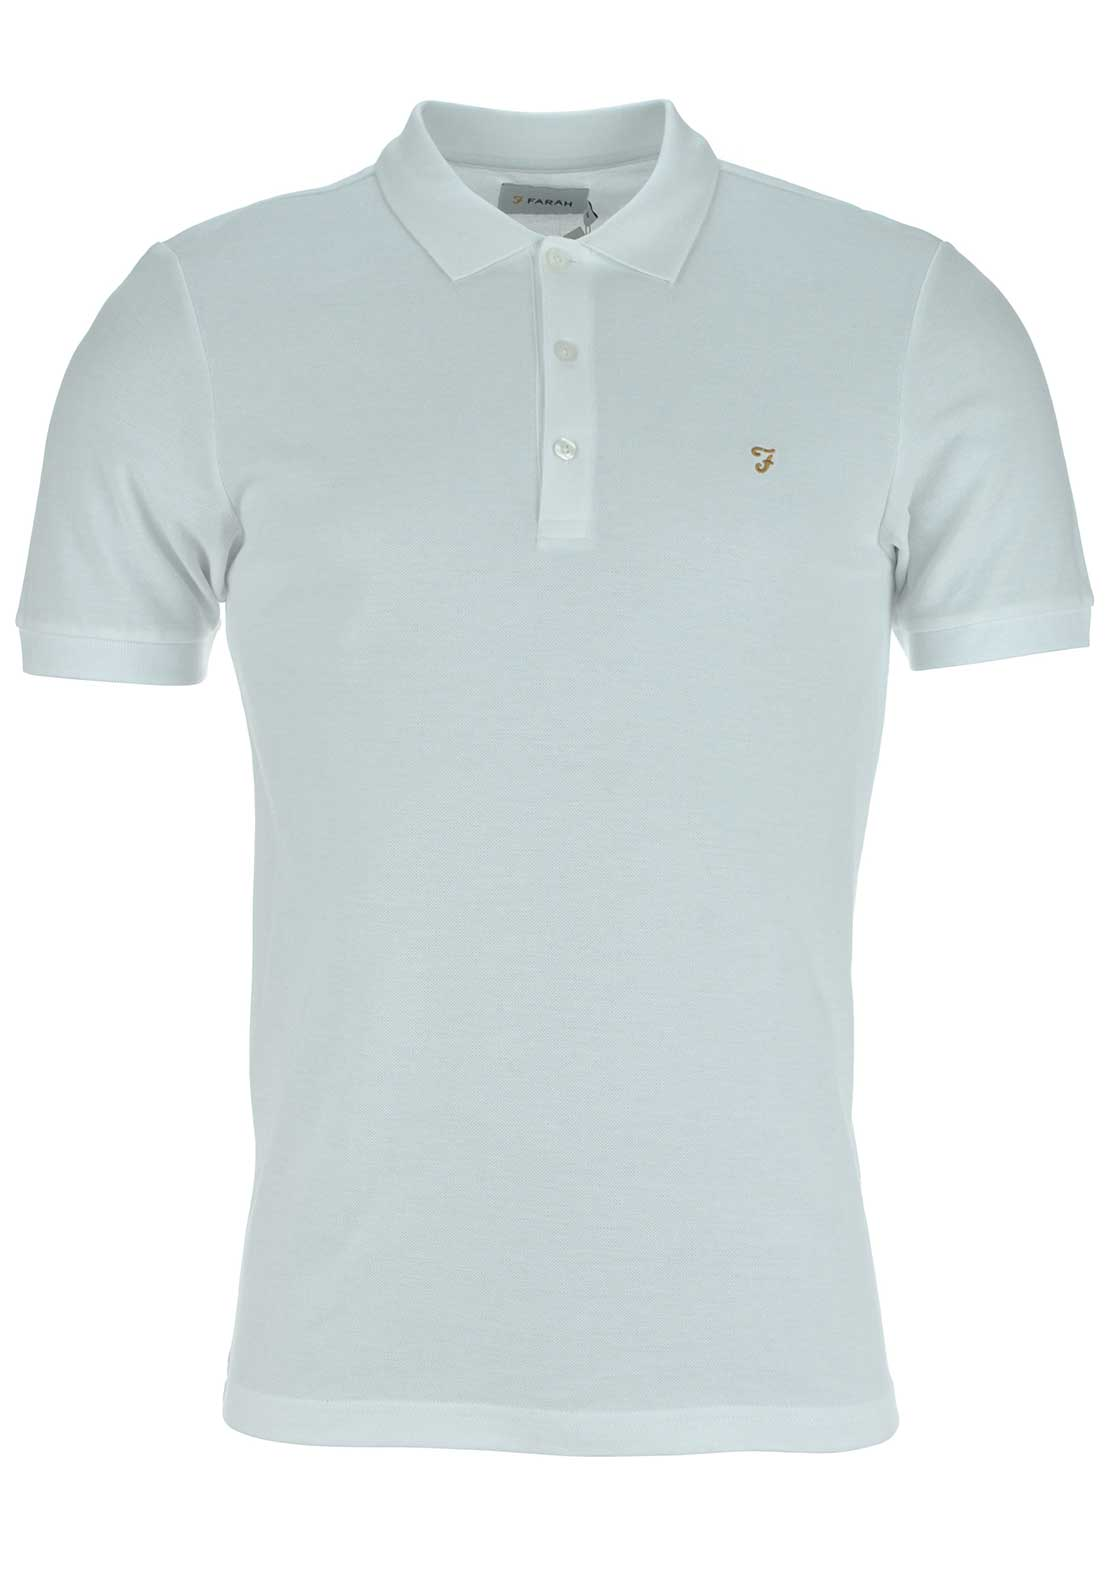 Farah Vintage Mens Blaney Plain Short Sleeved Polo, White